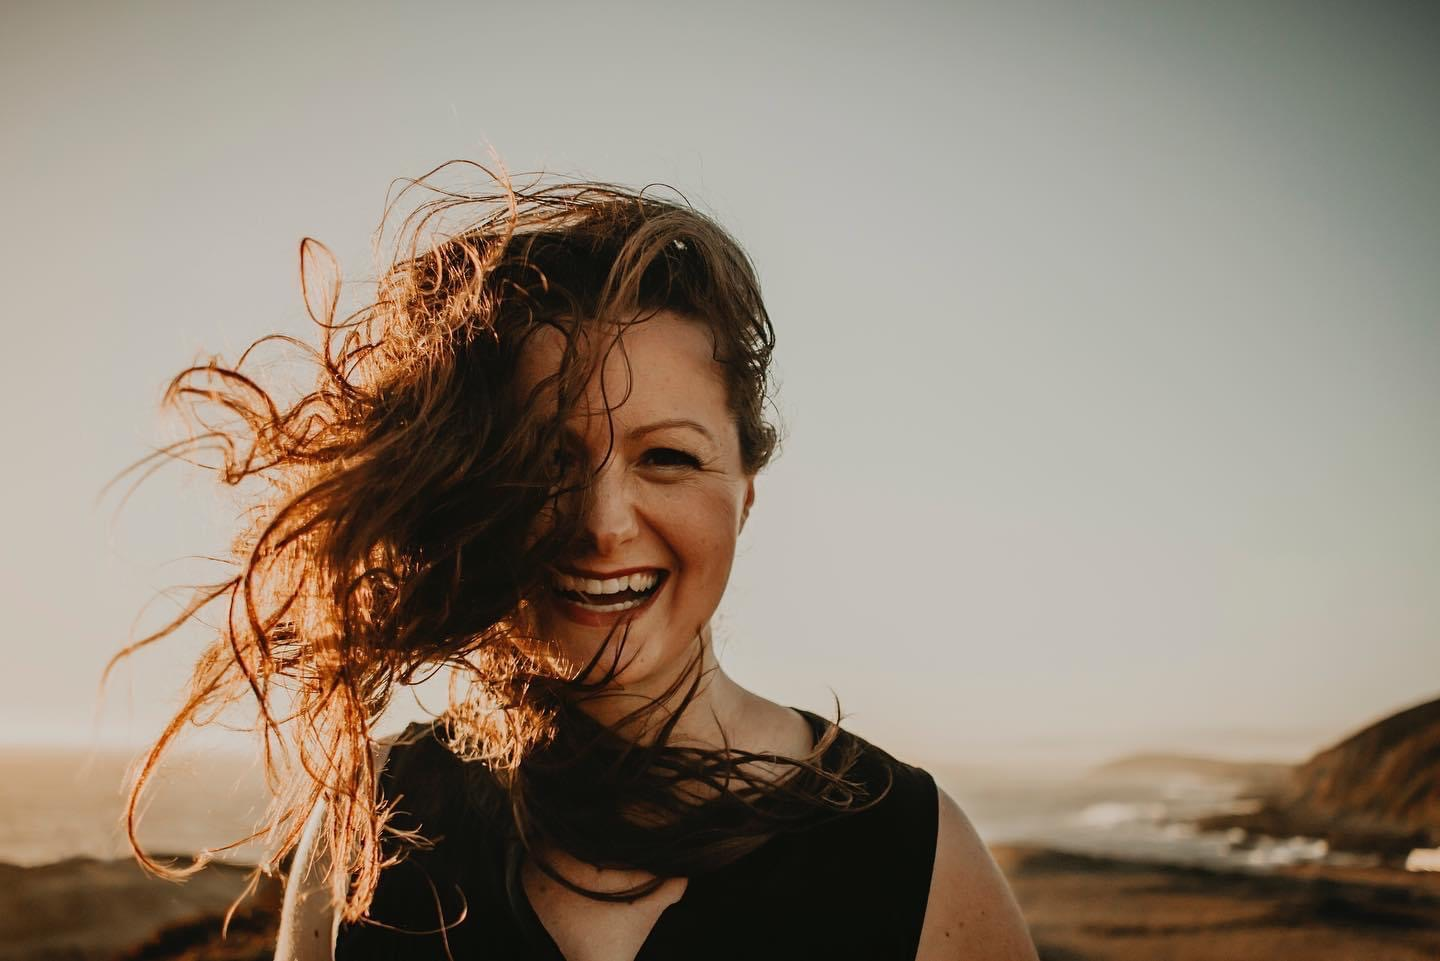 picture of a white woman looking straight into camera laughing, hair blowing messily in the wind, with the sea behind her